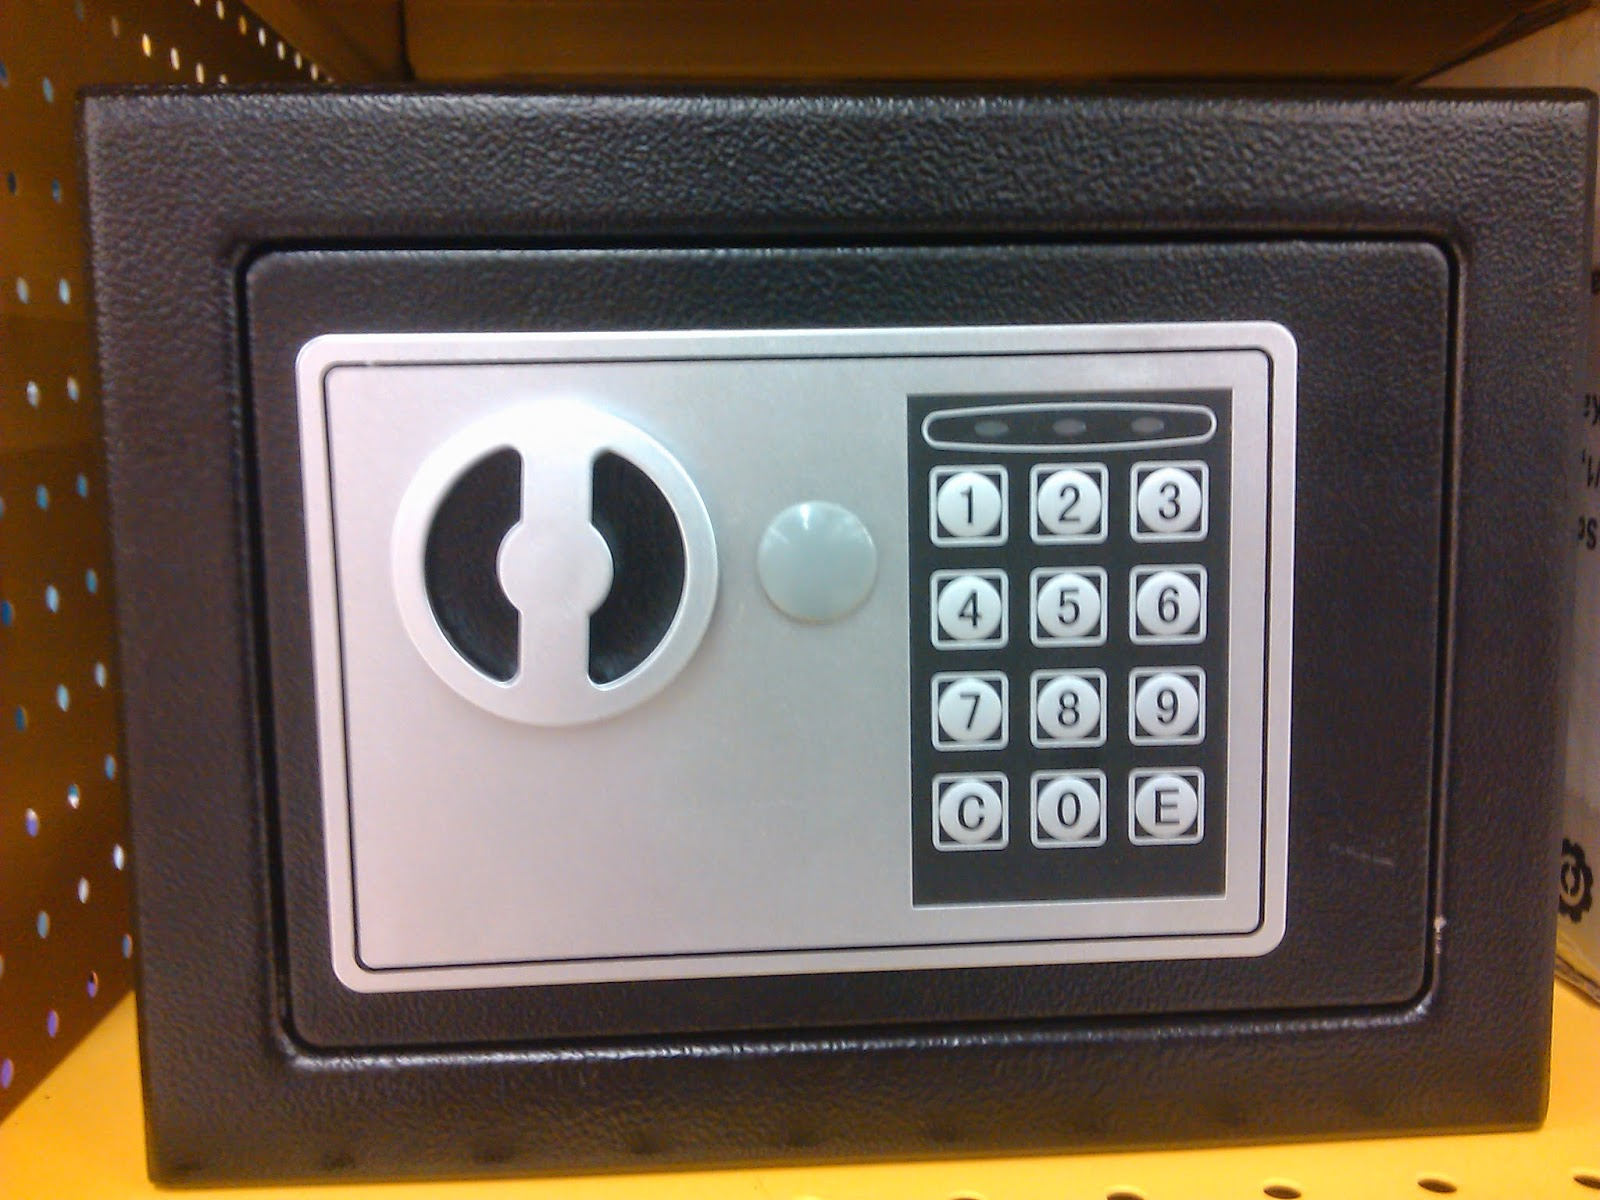 Electronic security safe